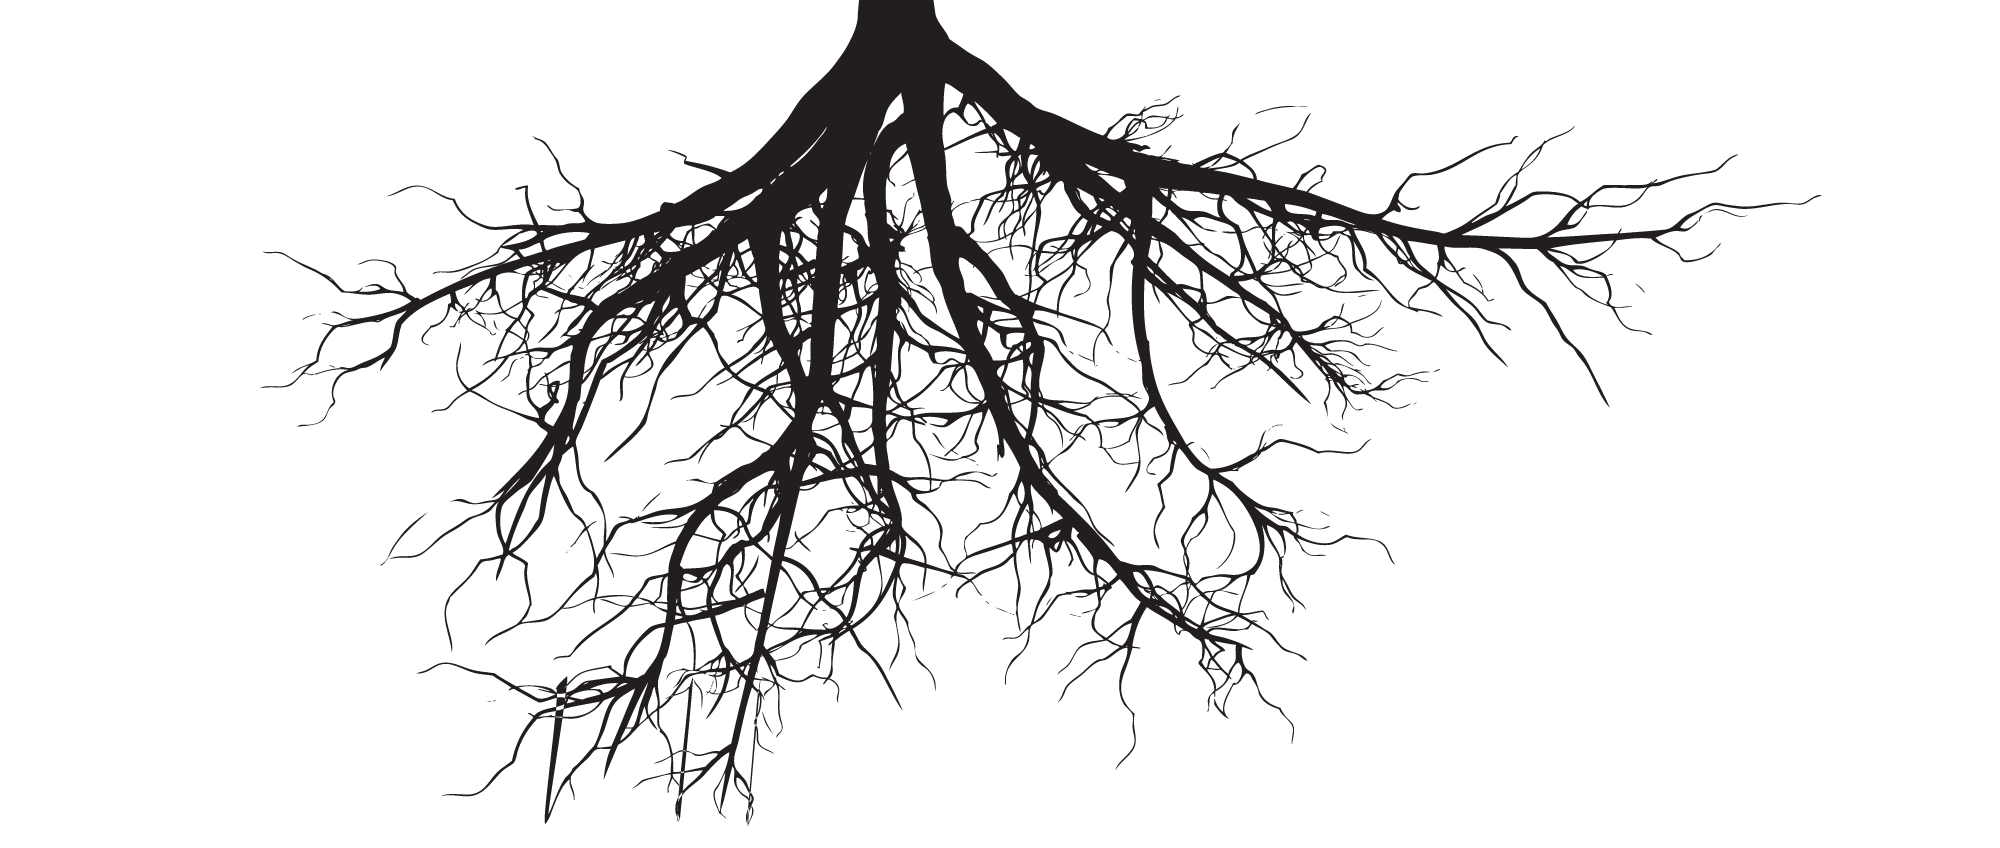 Tree roots silhouette png. Pixels arch photoshop pinterest